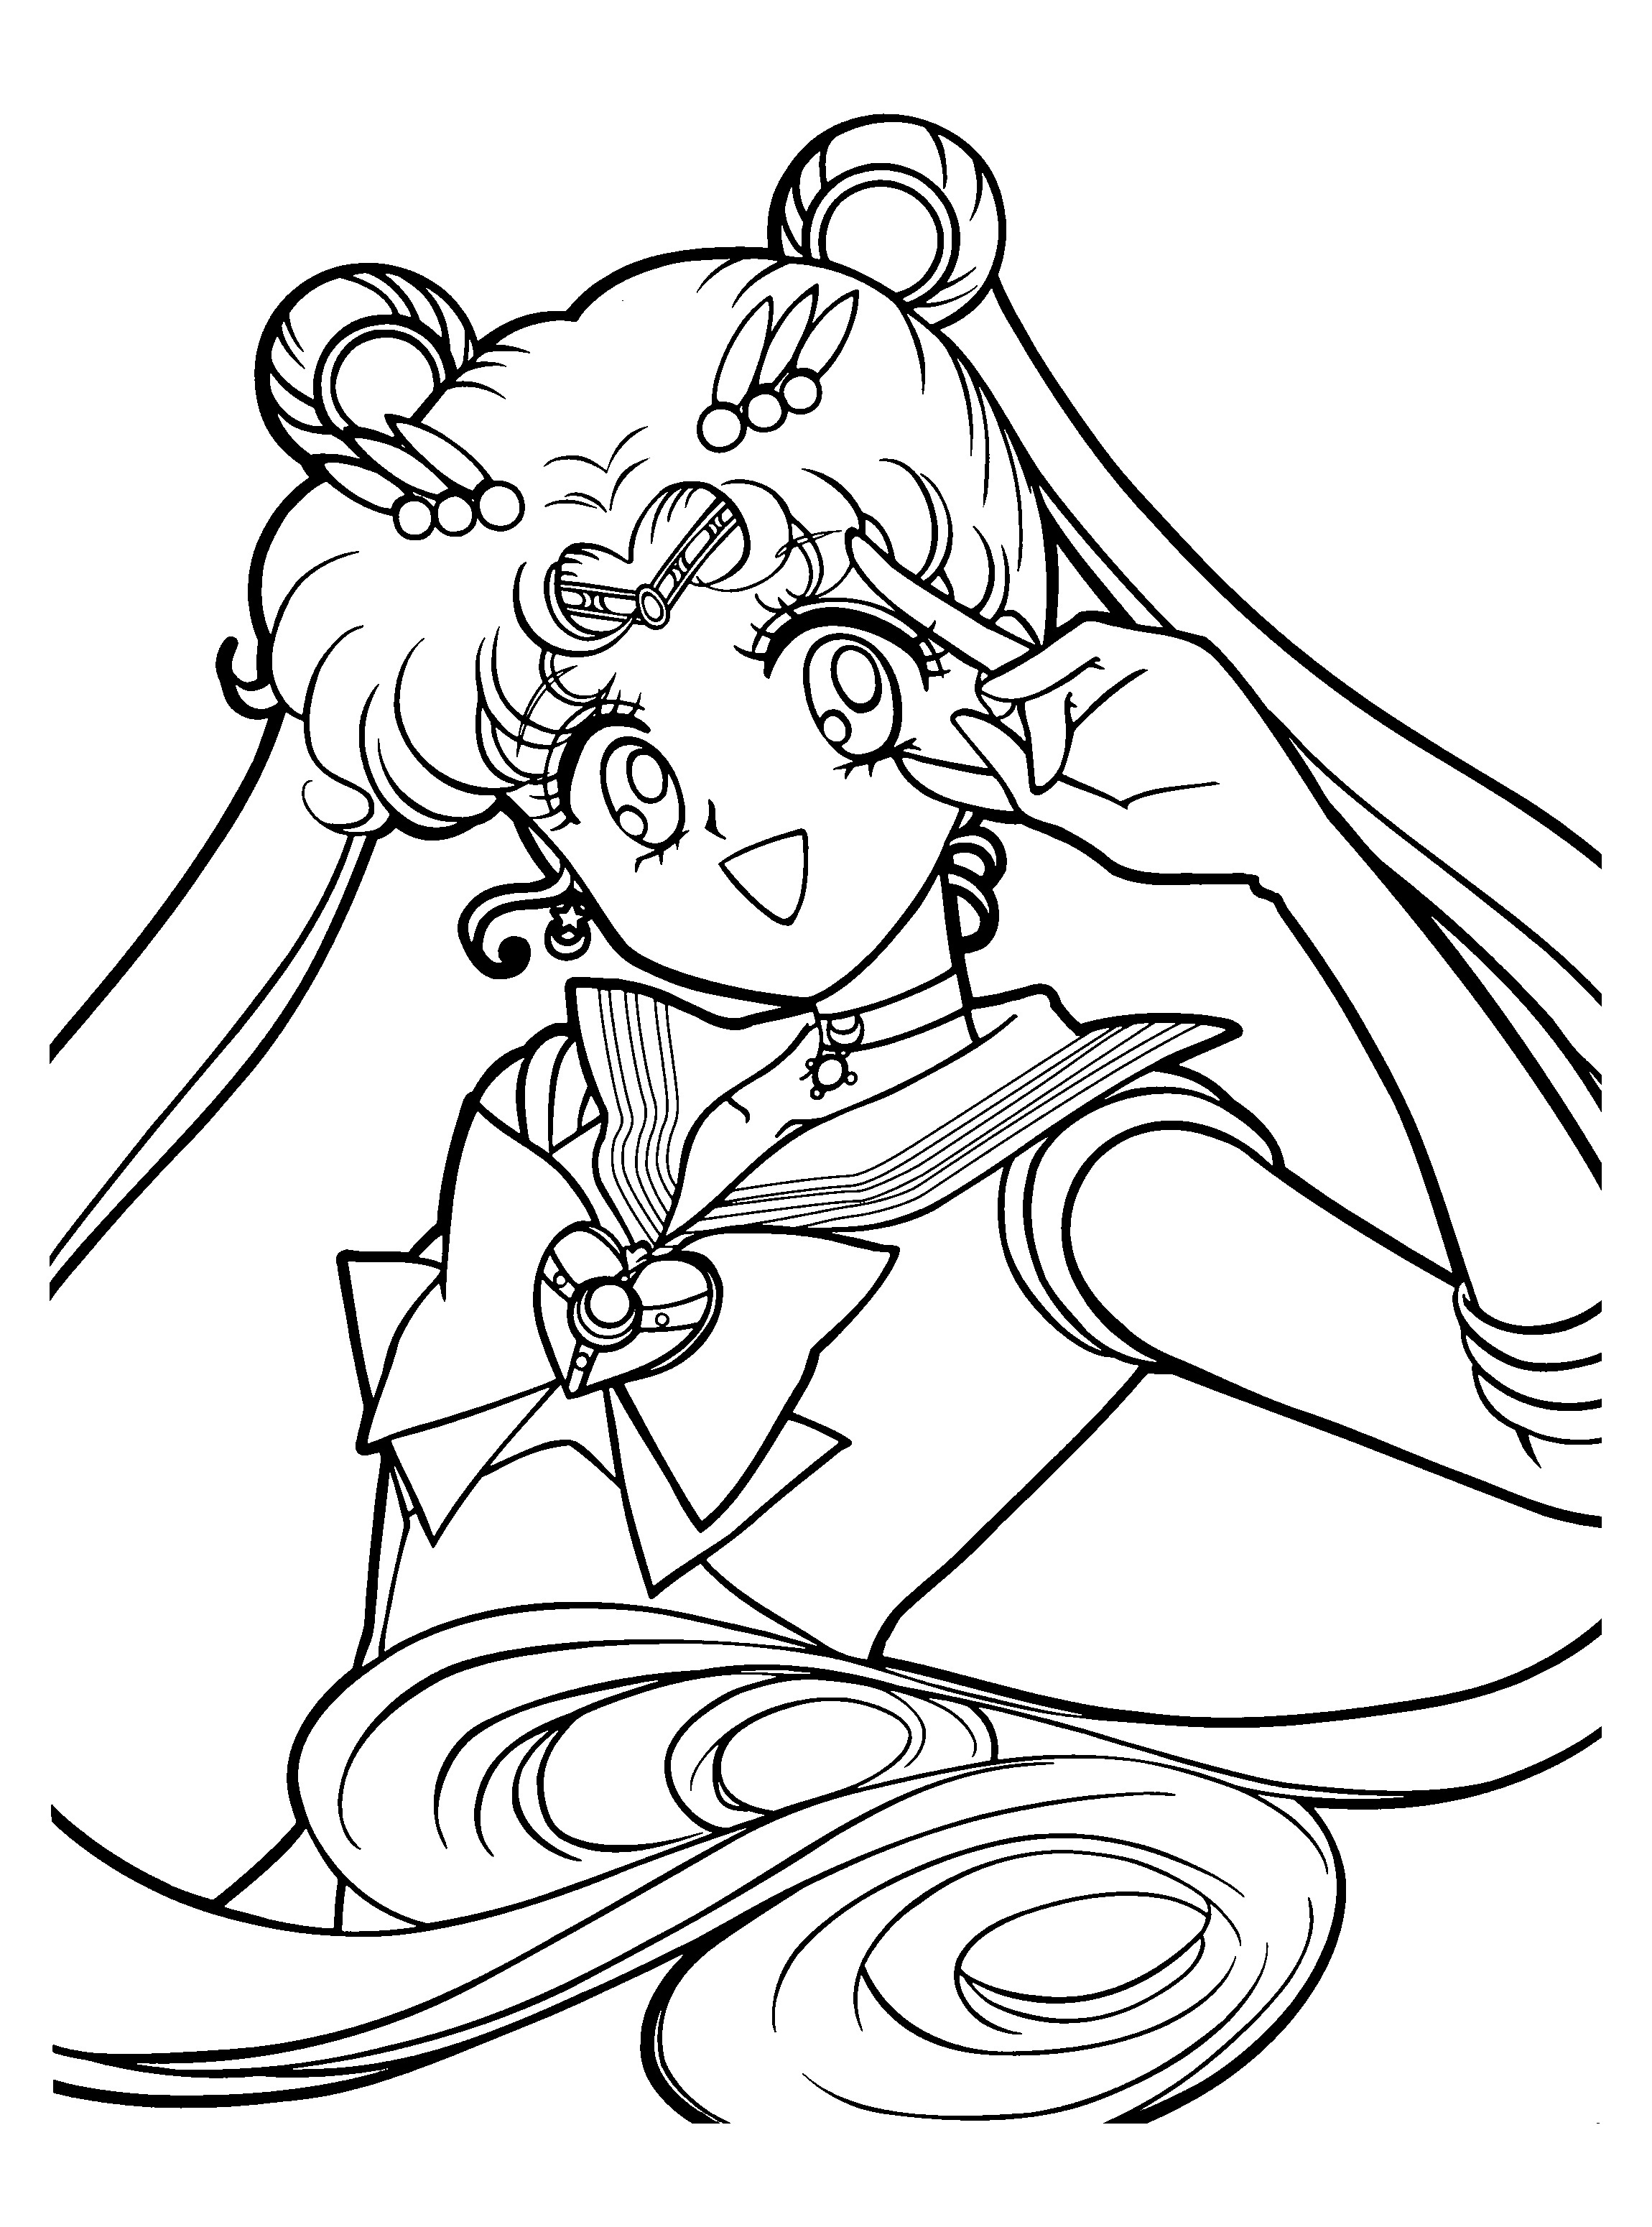 Printable Sailor Moon Coloring Pages | Coloring Me